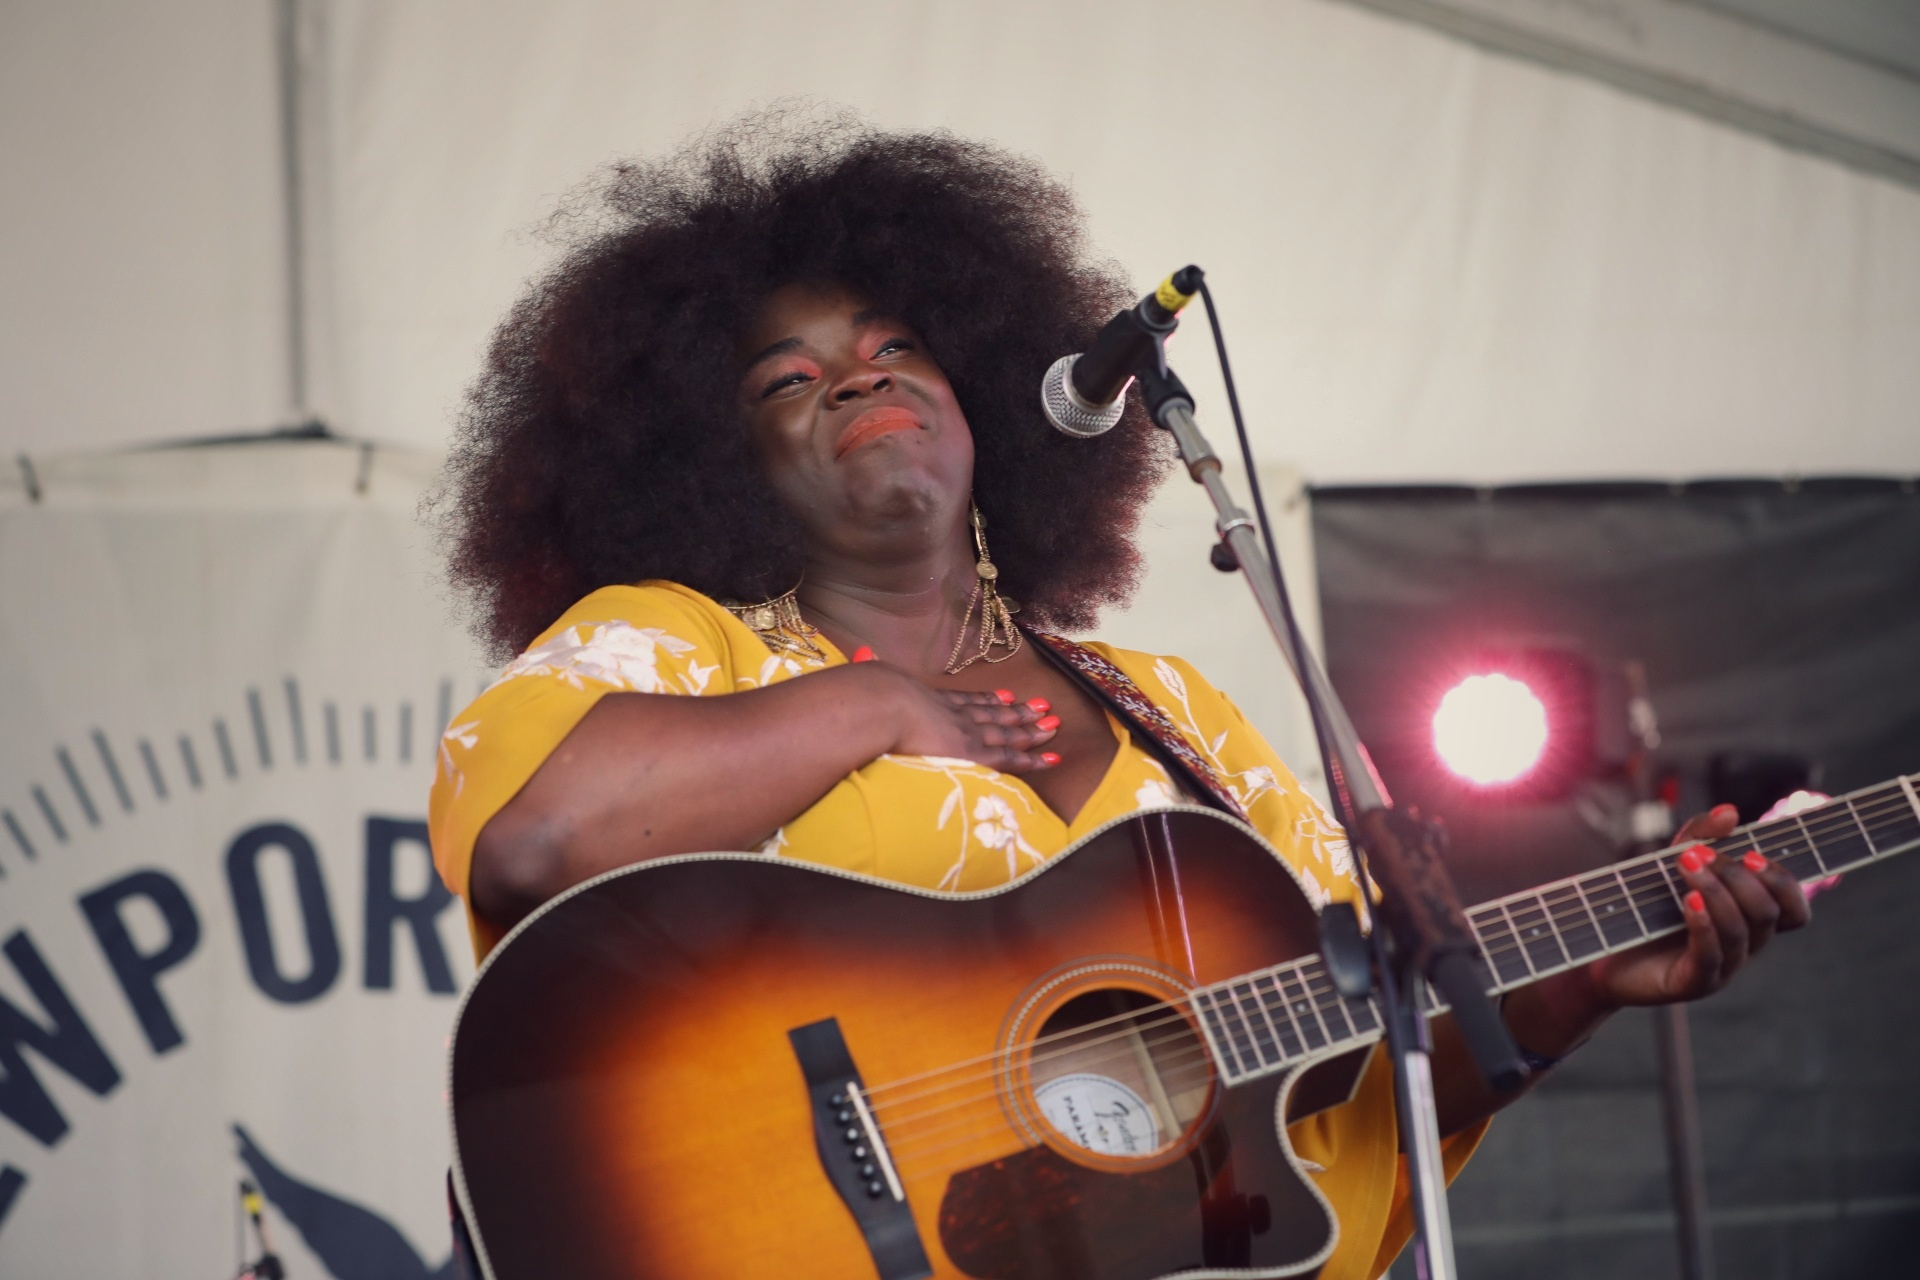 Yola, wearing a yellow dress, places her hand over her heart while holding a guitar at Newport Folk Fest.